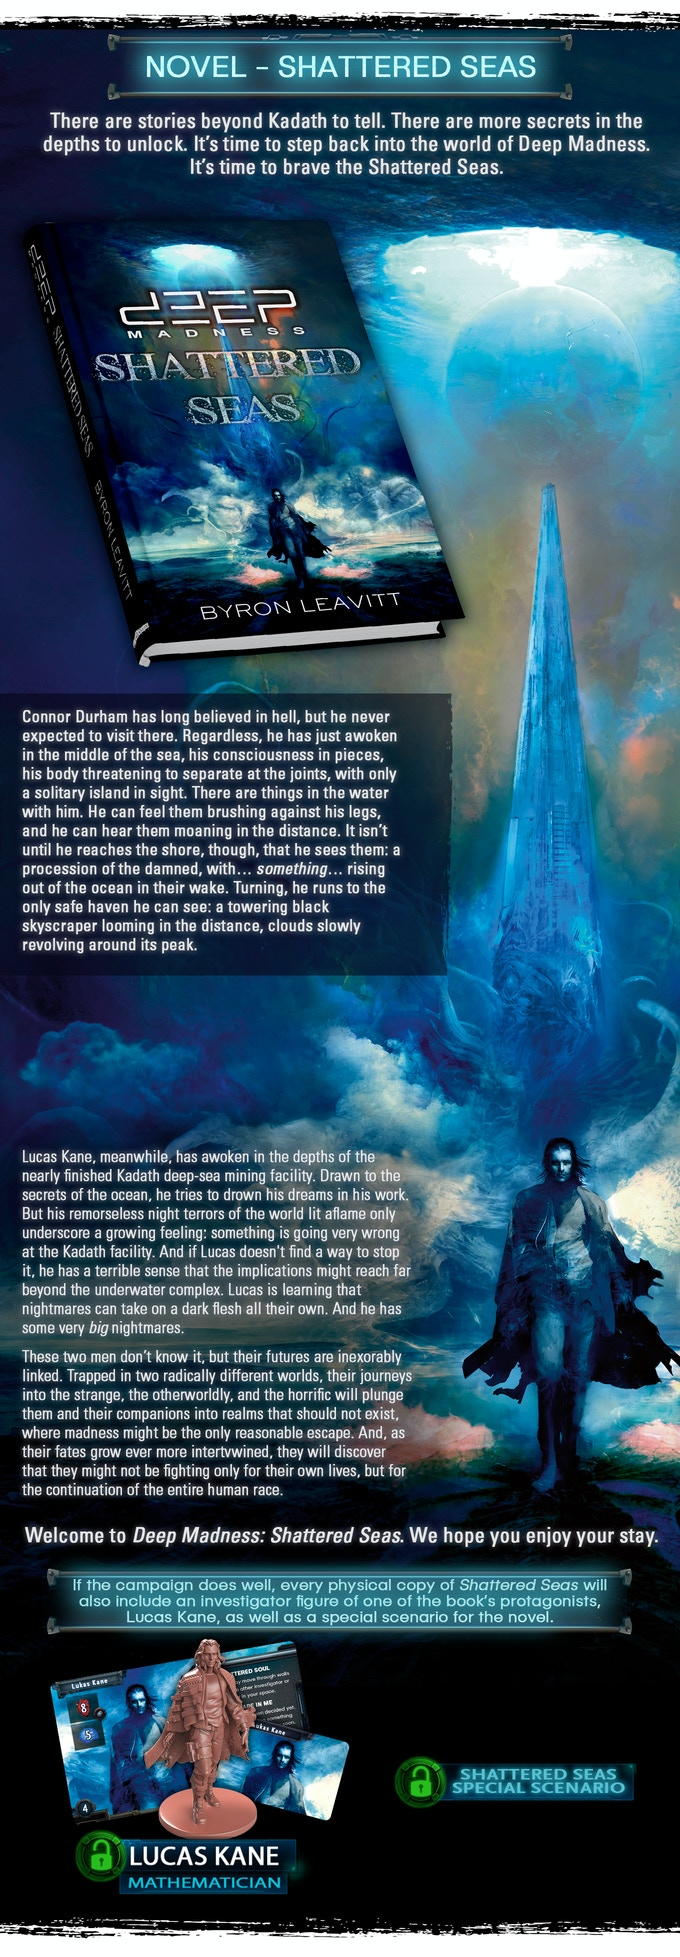 The delivery time for Deep Madness: Shattered Seas is December 2019. The physical copy of the novel will contain the cards for Lucas Kane and the special scenario in all 5 languages.